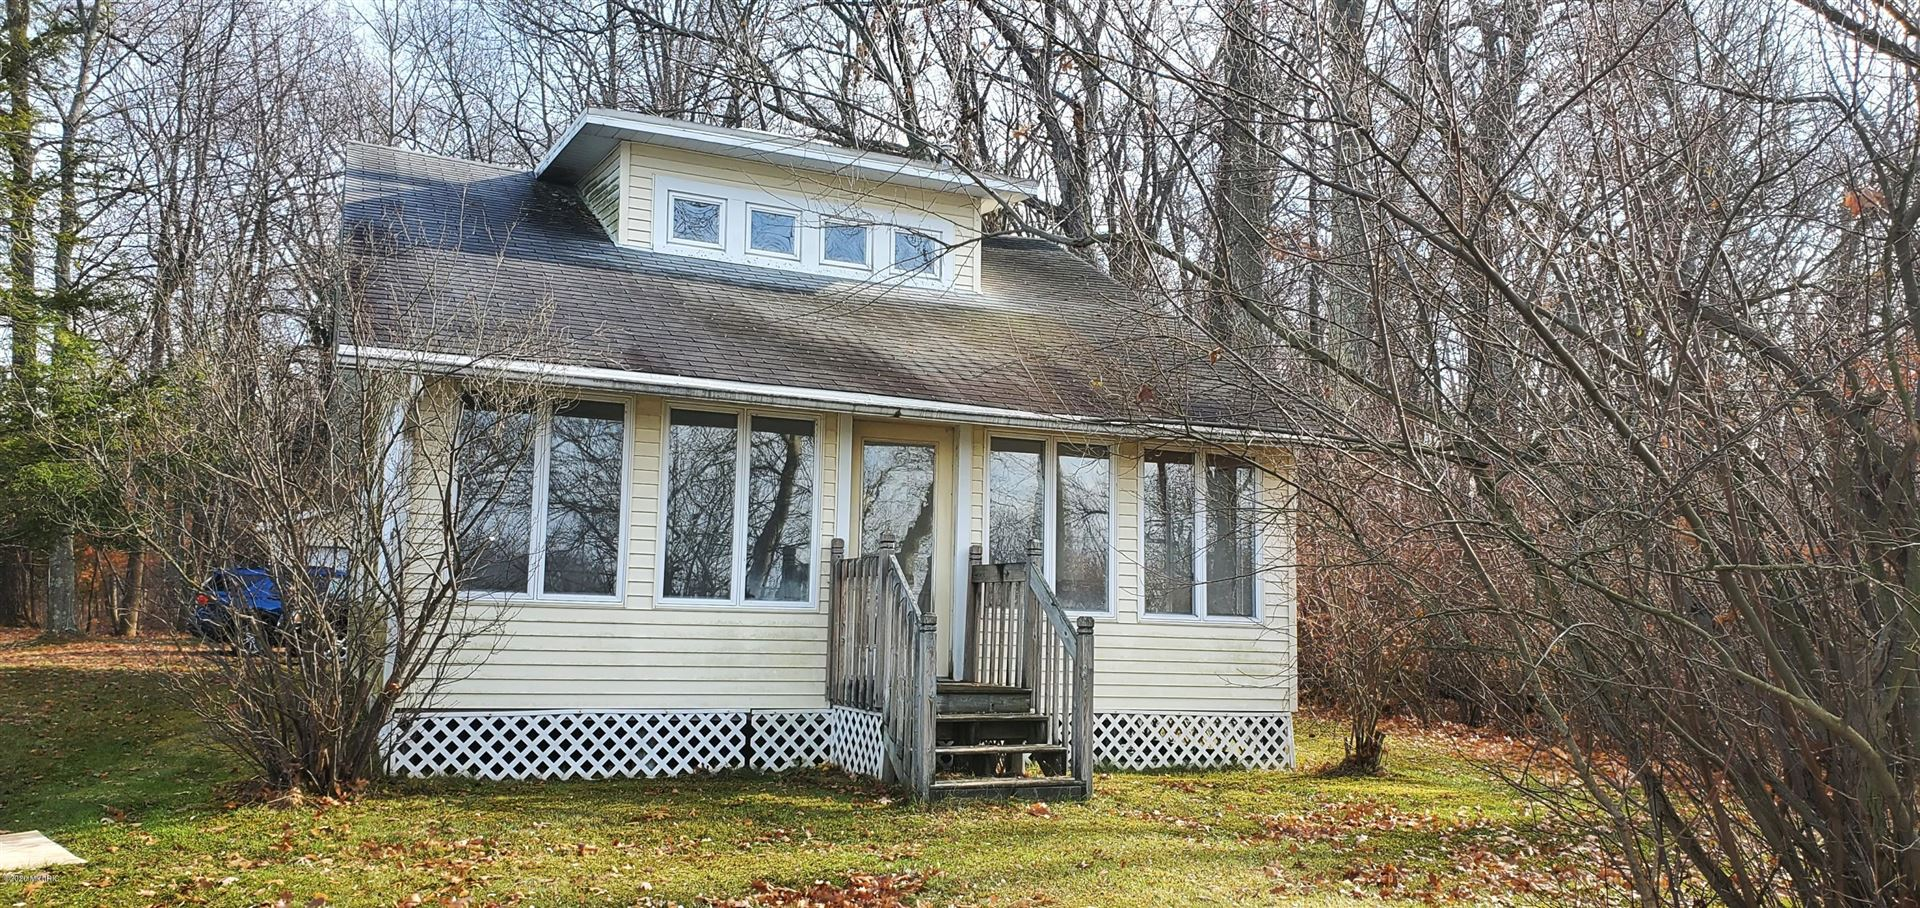 3982 Hermitage Pointe Road, Middleville, MI 49333 - MLS#: 20047642